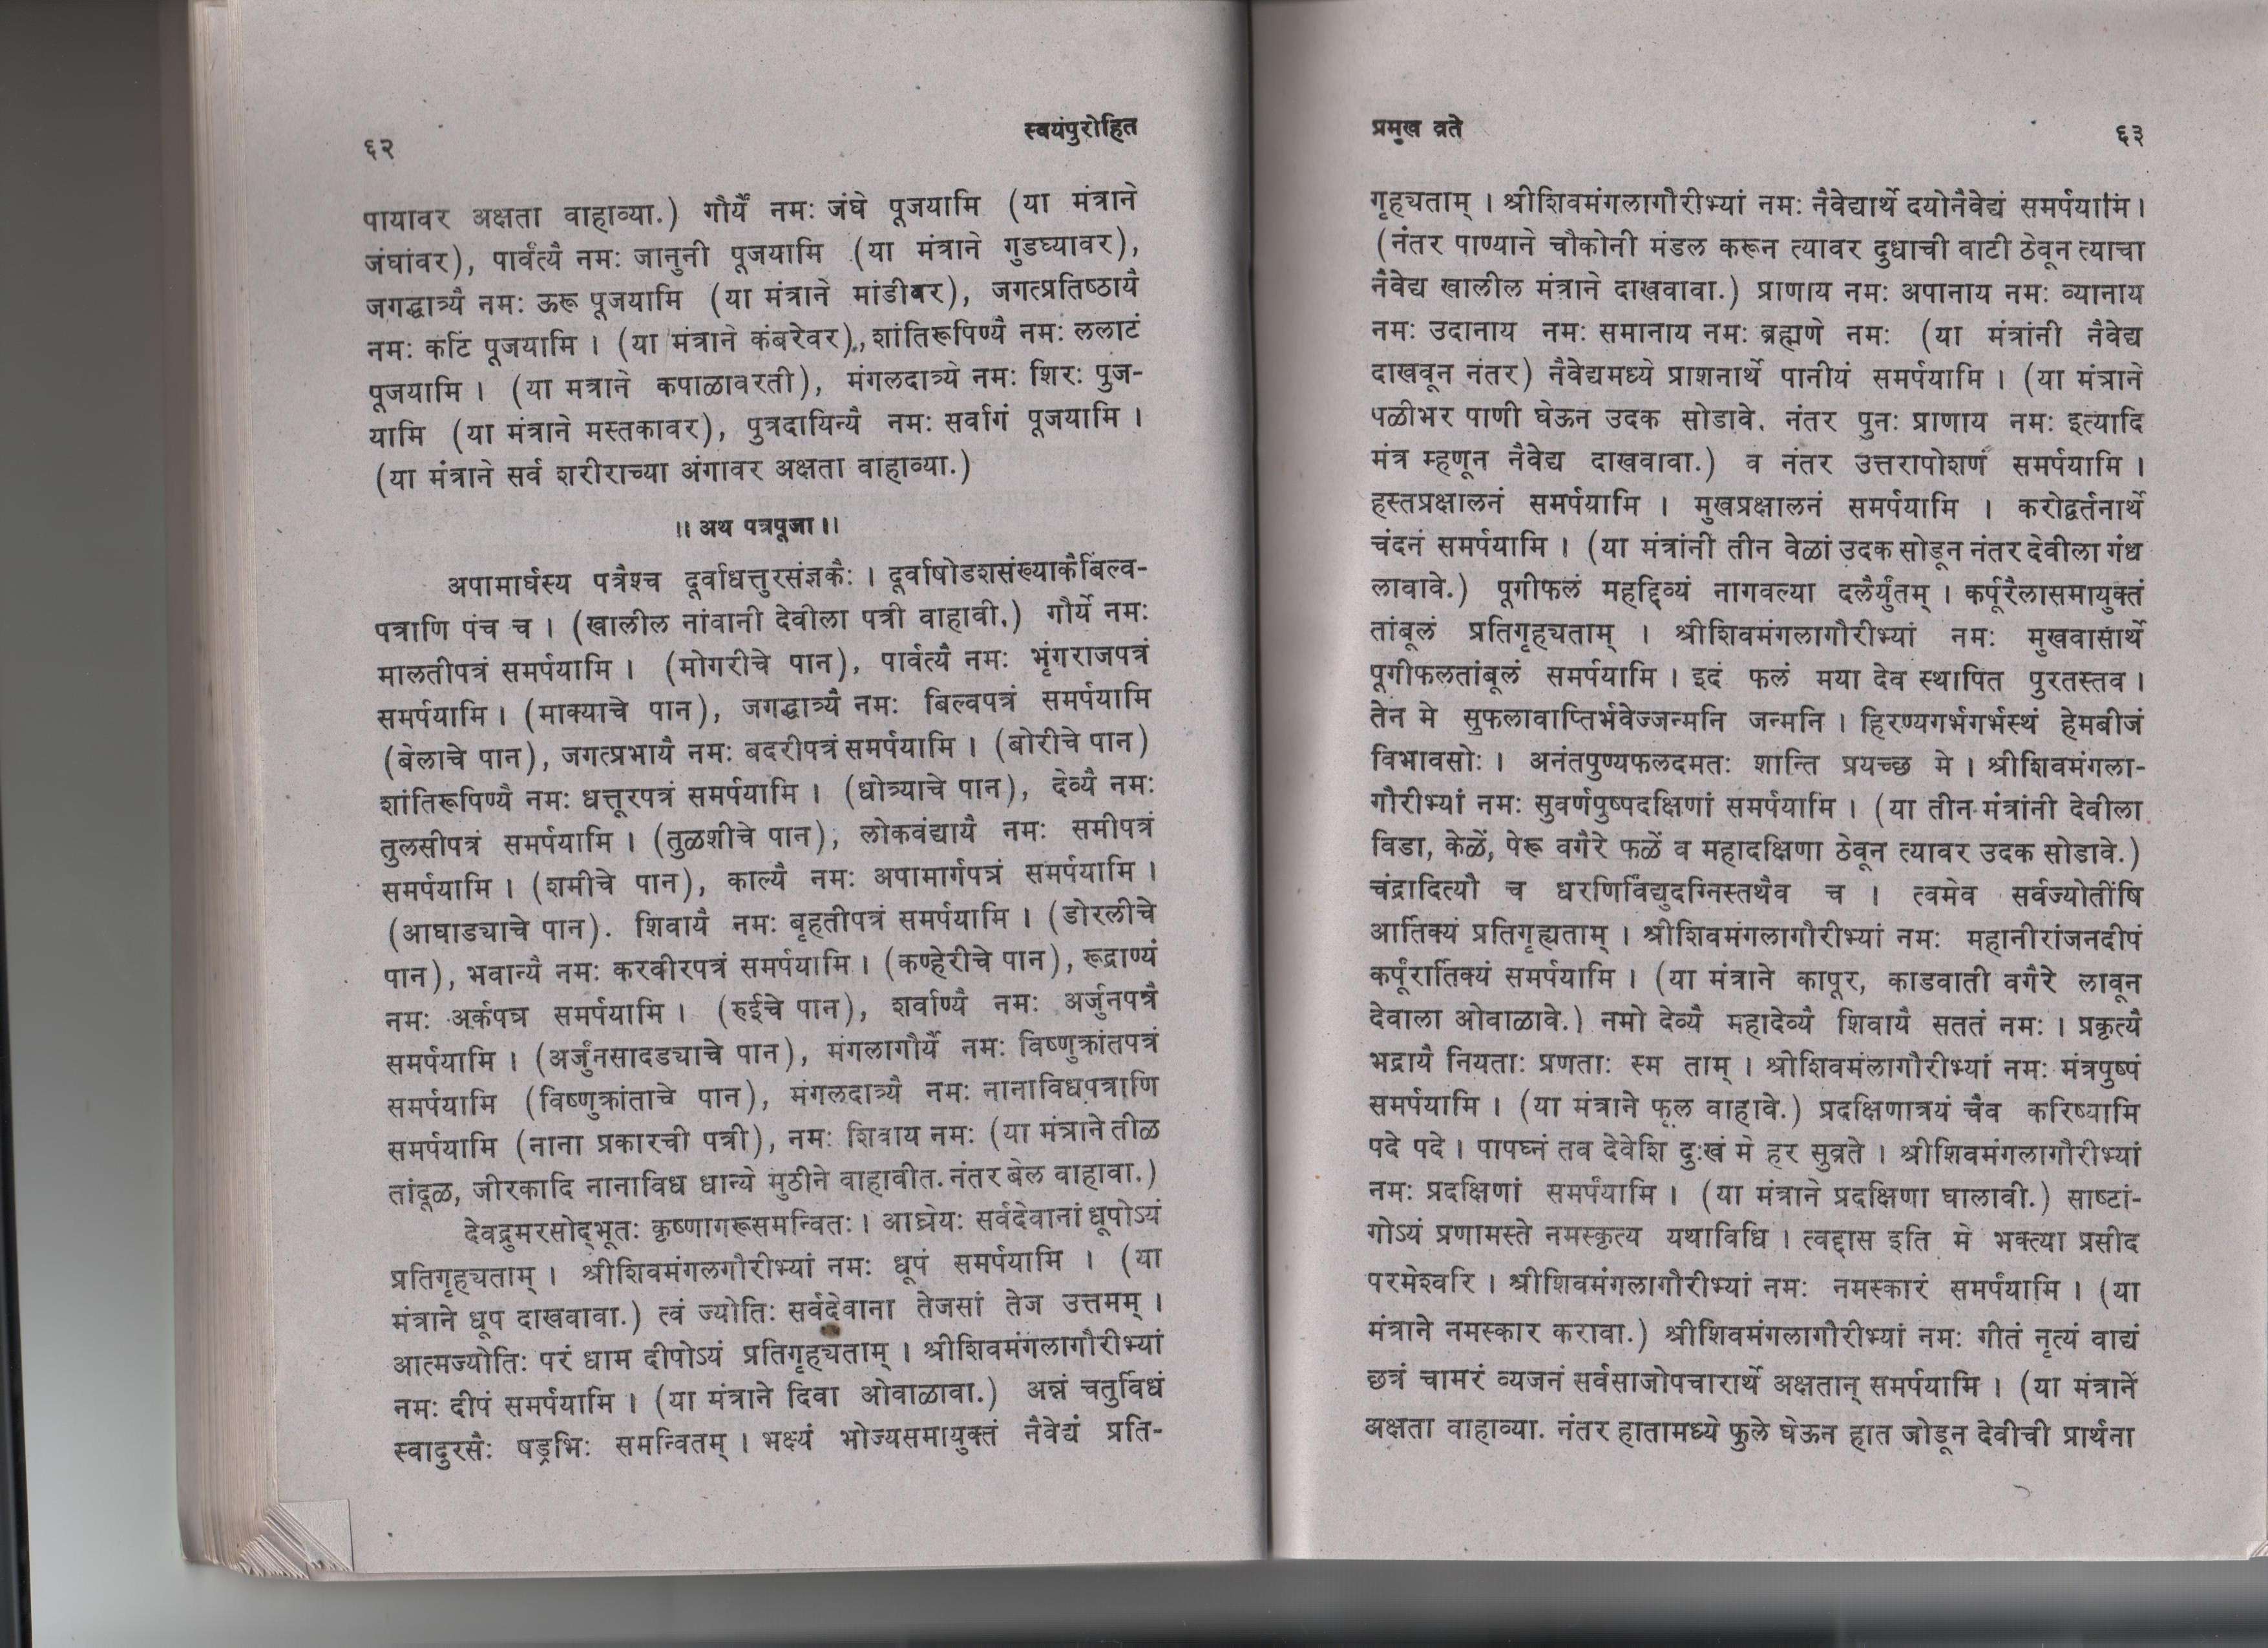 Other Marathi texts and kavitA